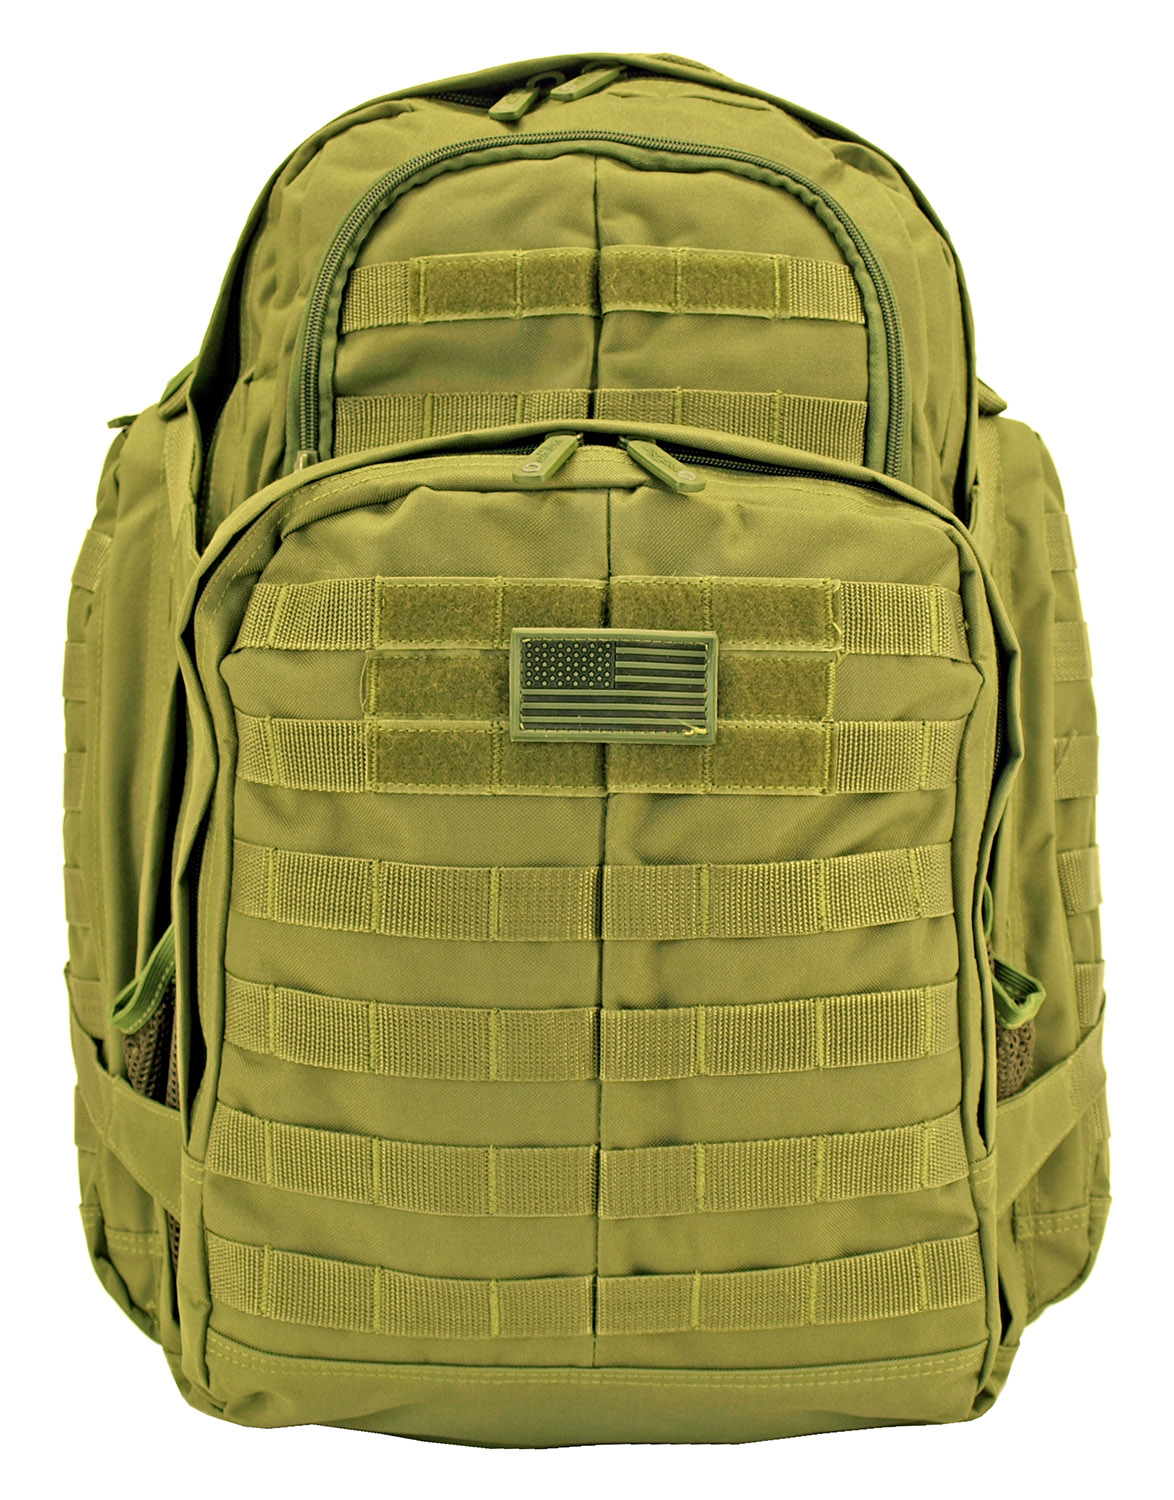 Expandable '73 Backpack - Olive Green